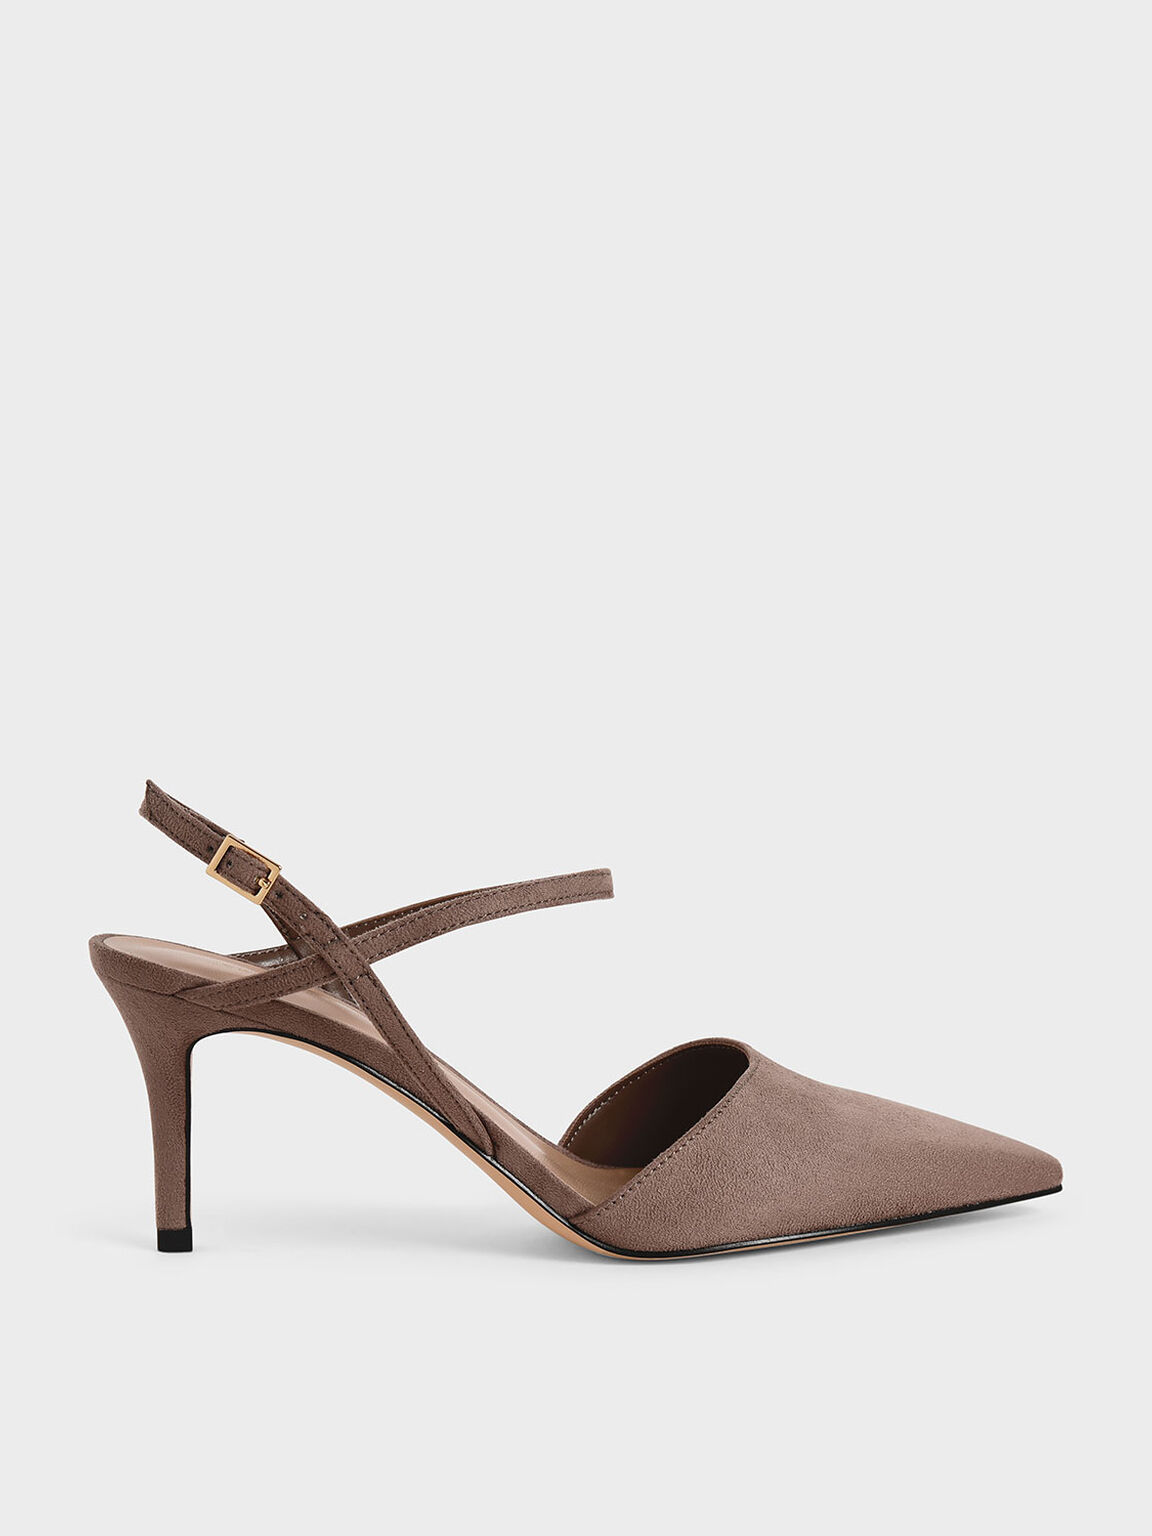 Textured Ankle Strap Pumps, Taupe, hi-res